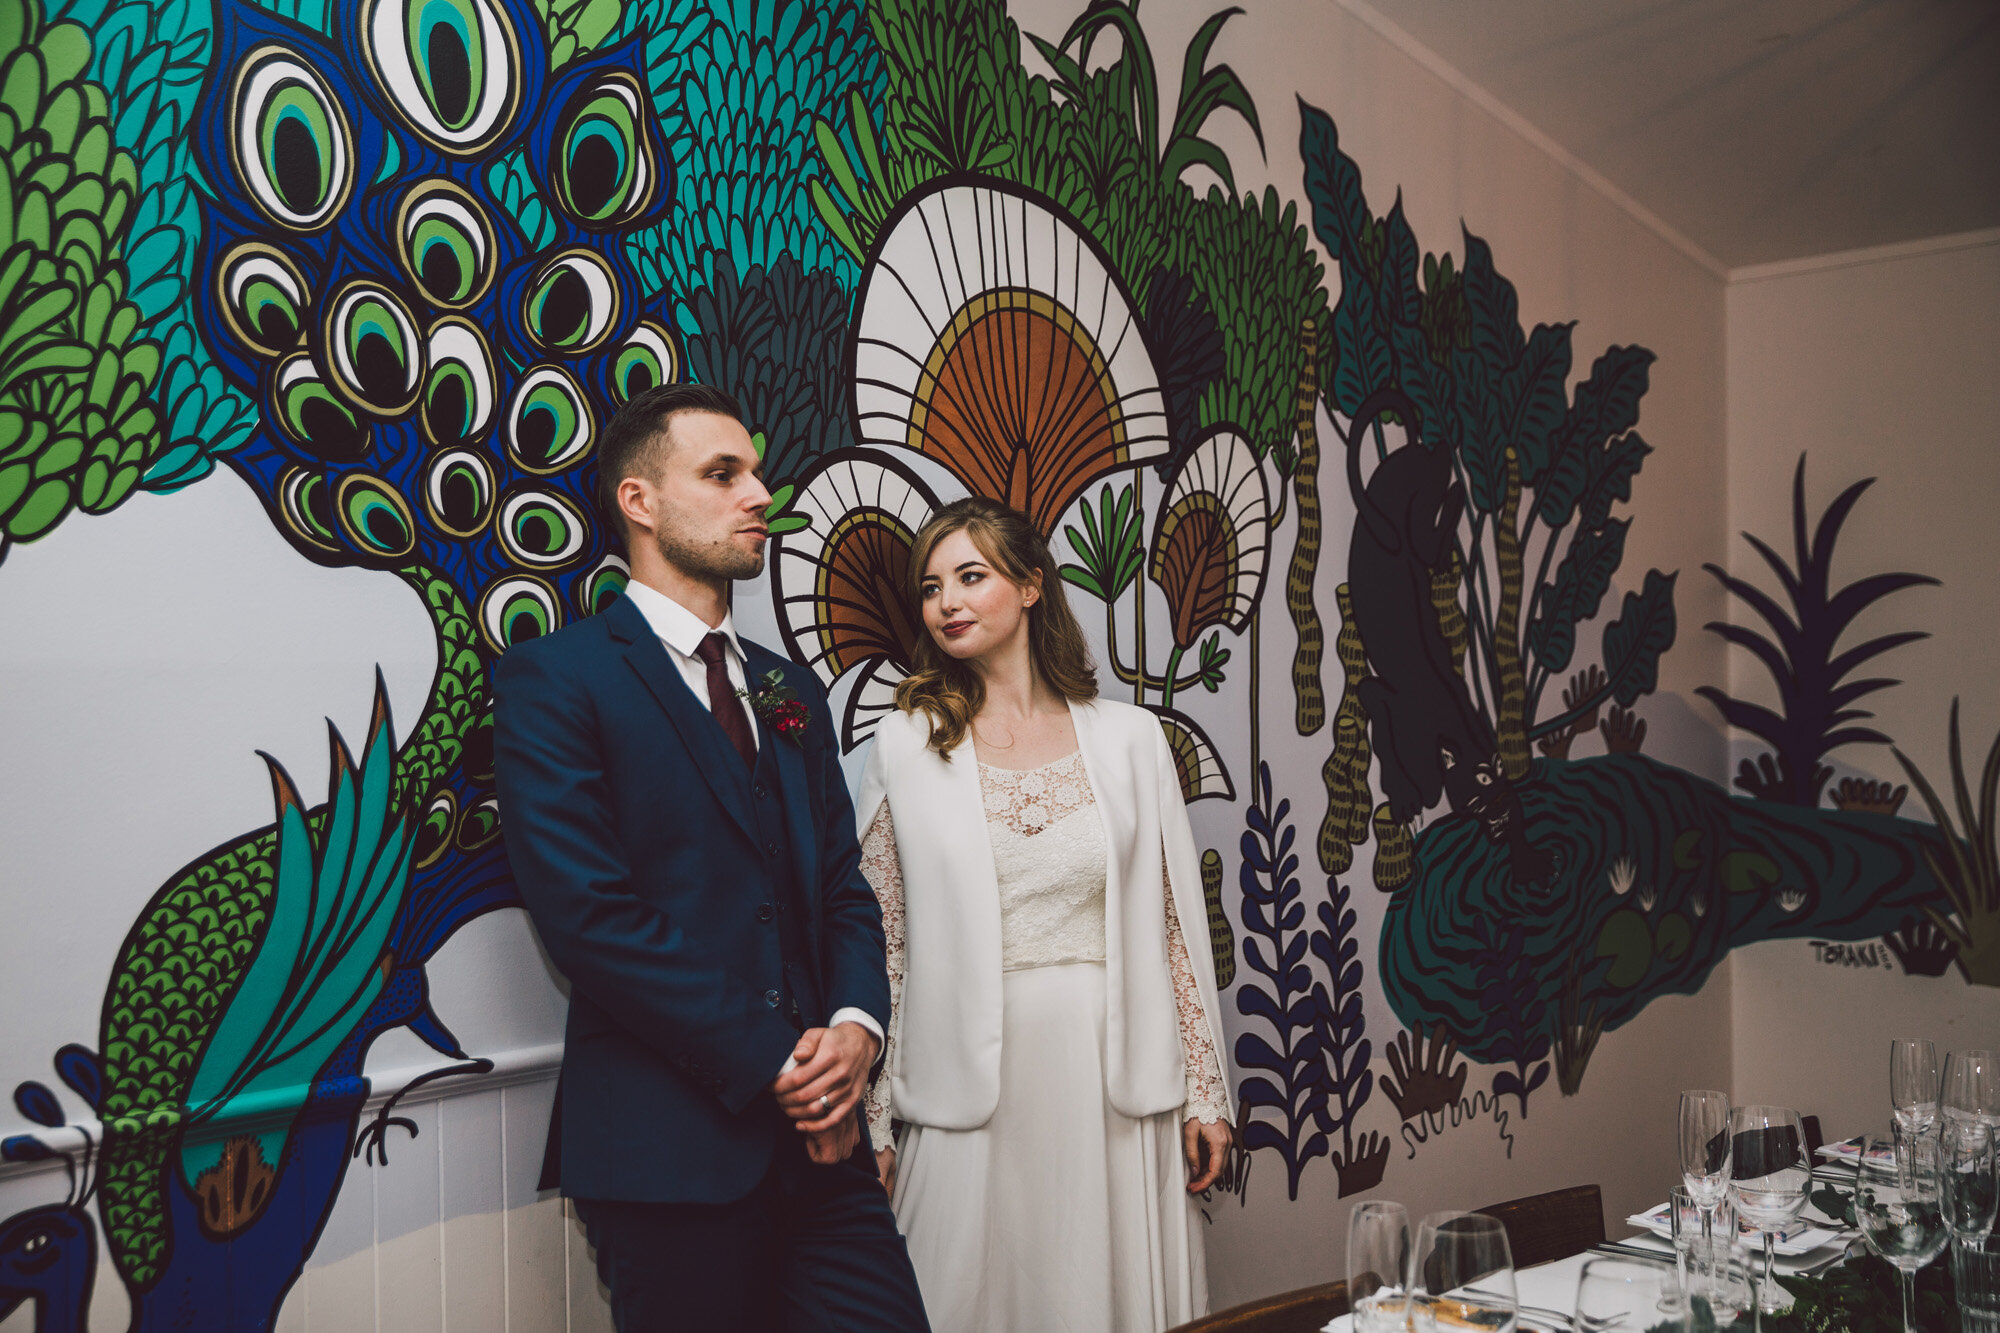 SMP_Wellington_Elopement_Wedding_056.jpg